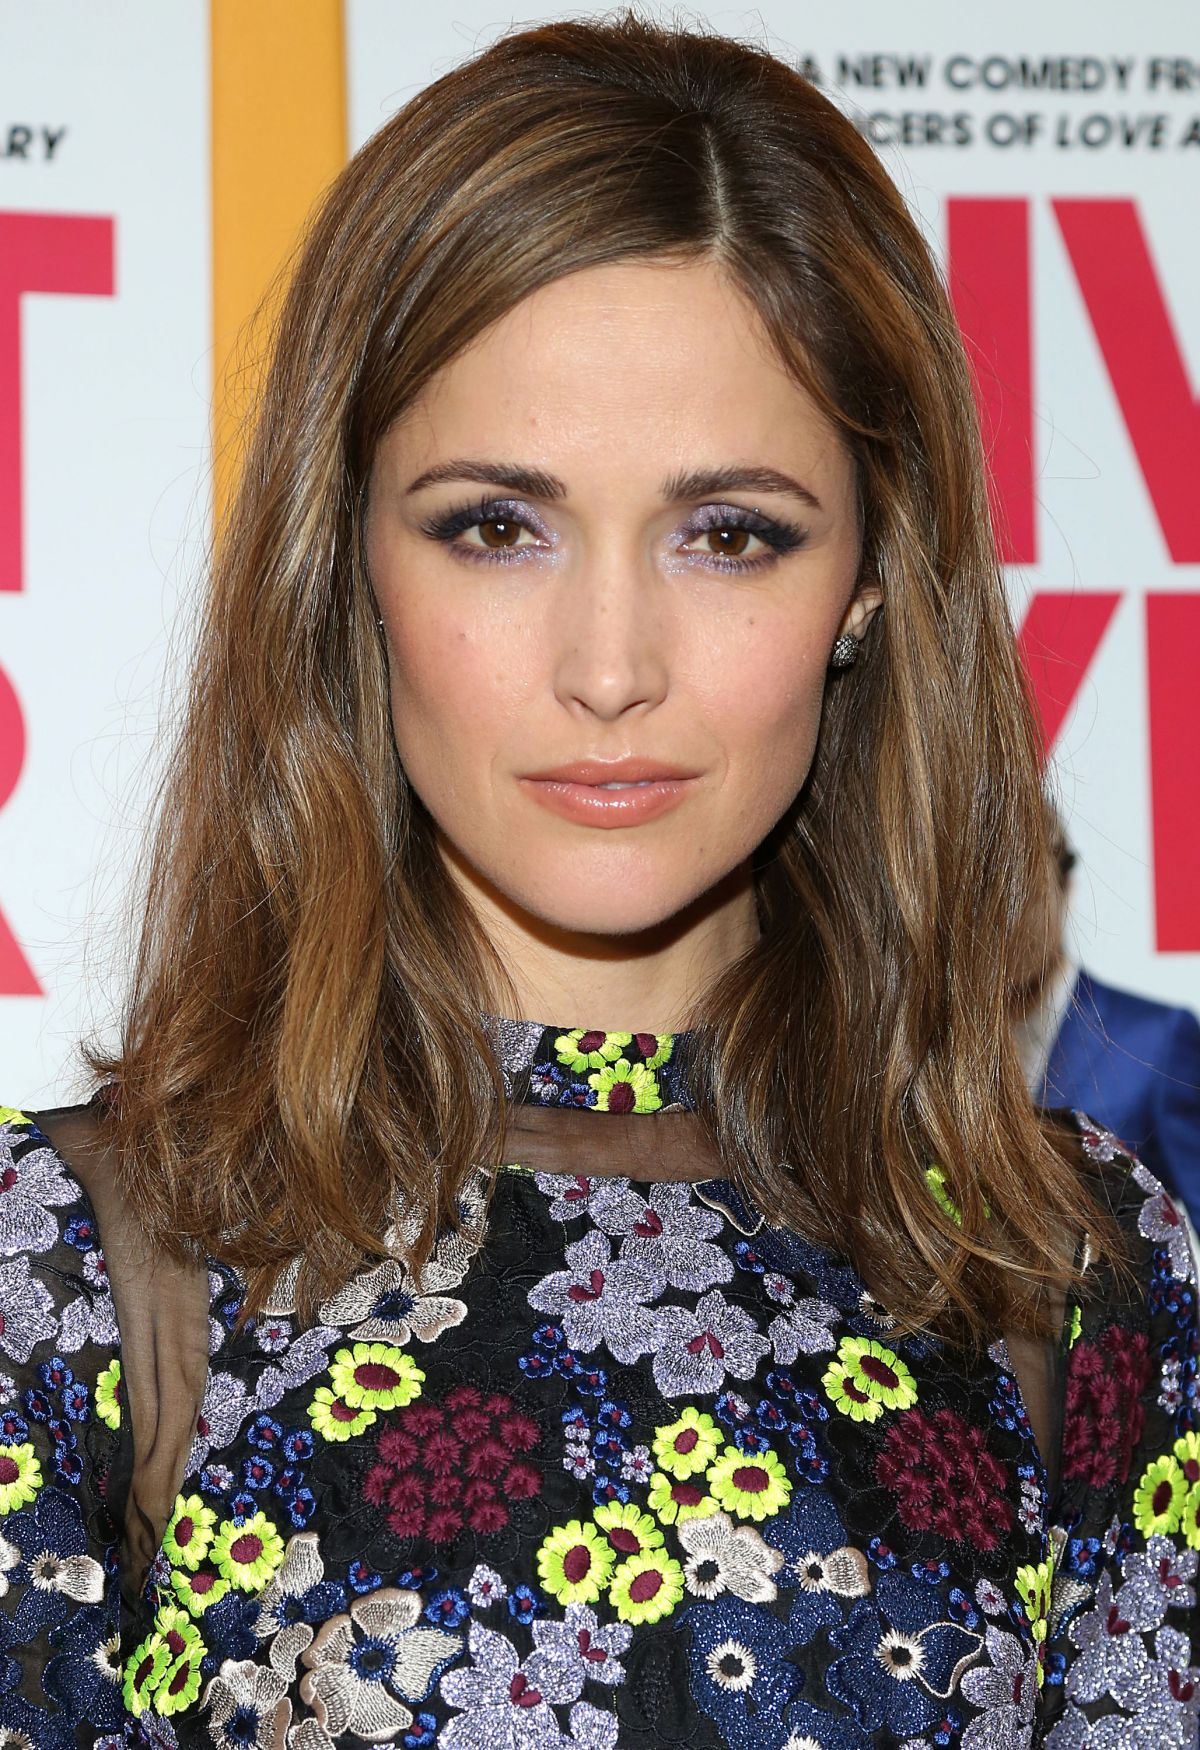 Rose Byrne At The I give it a year Screening